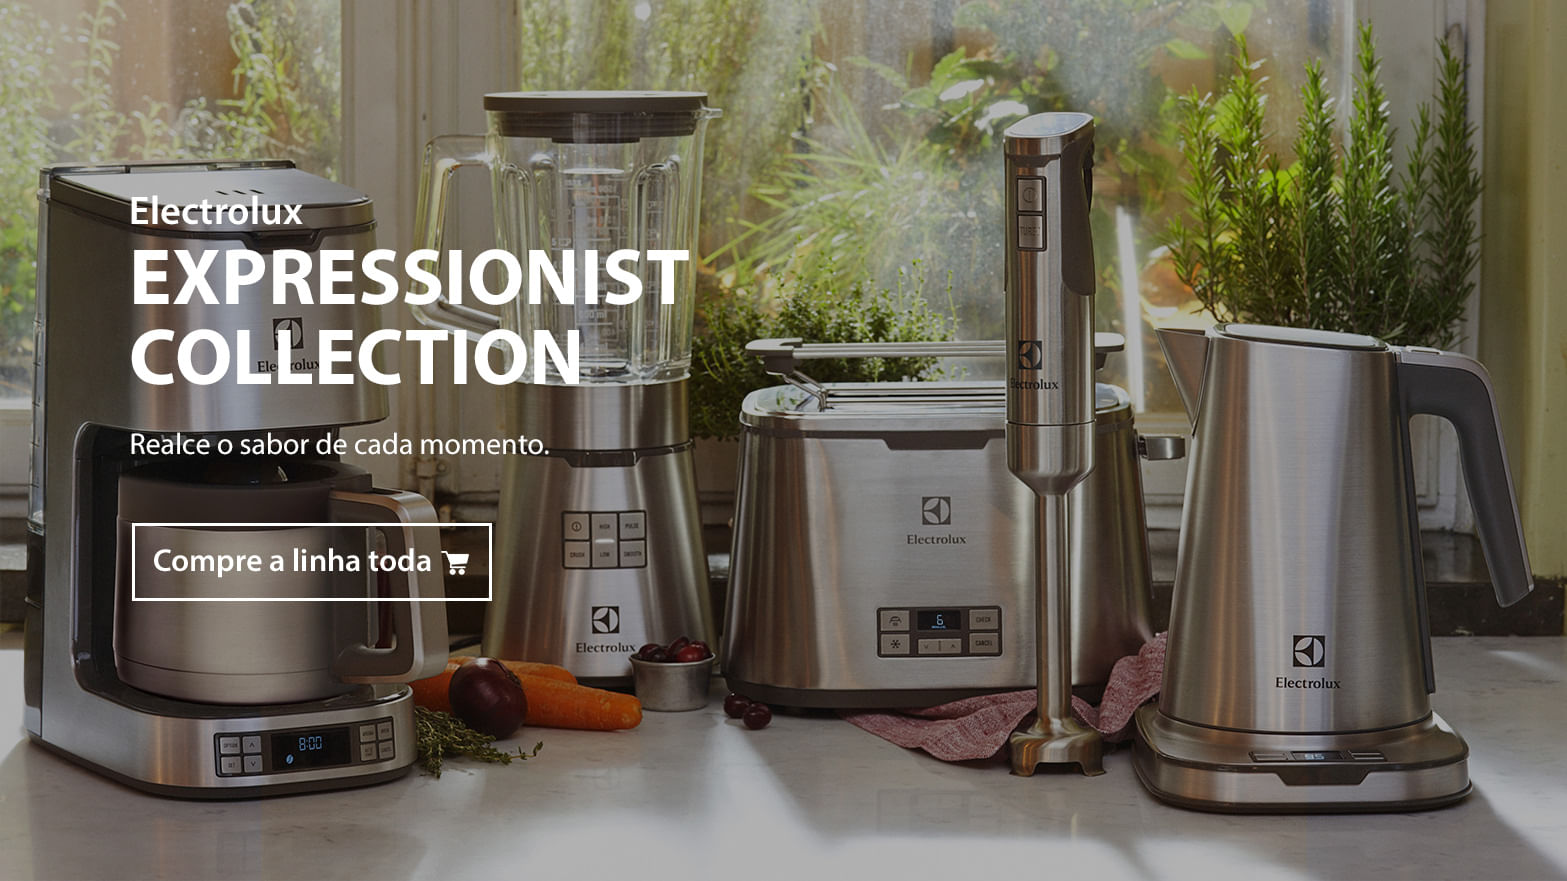 Electrolux Expressionist Collection